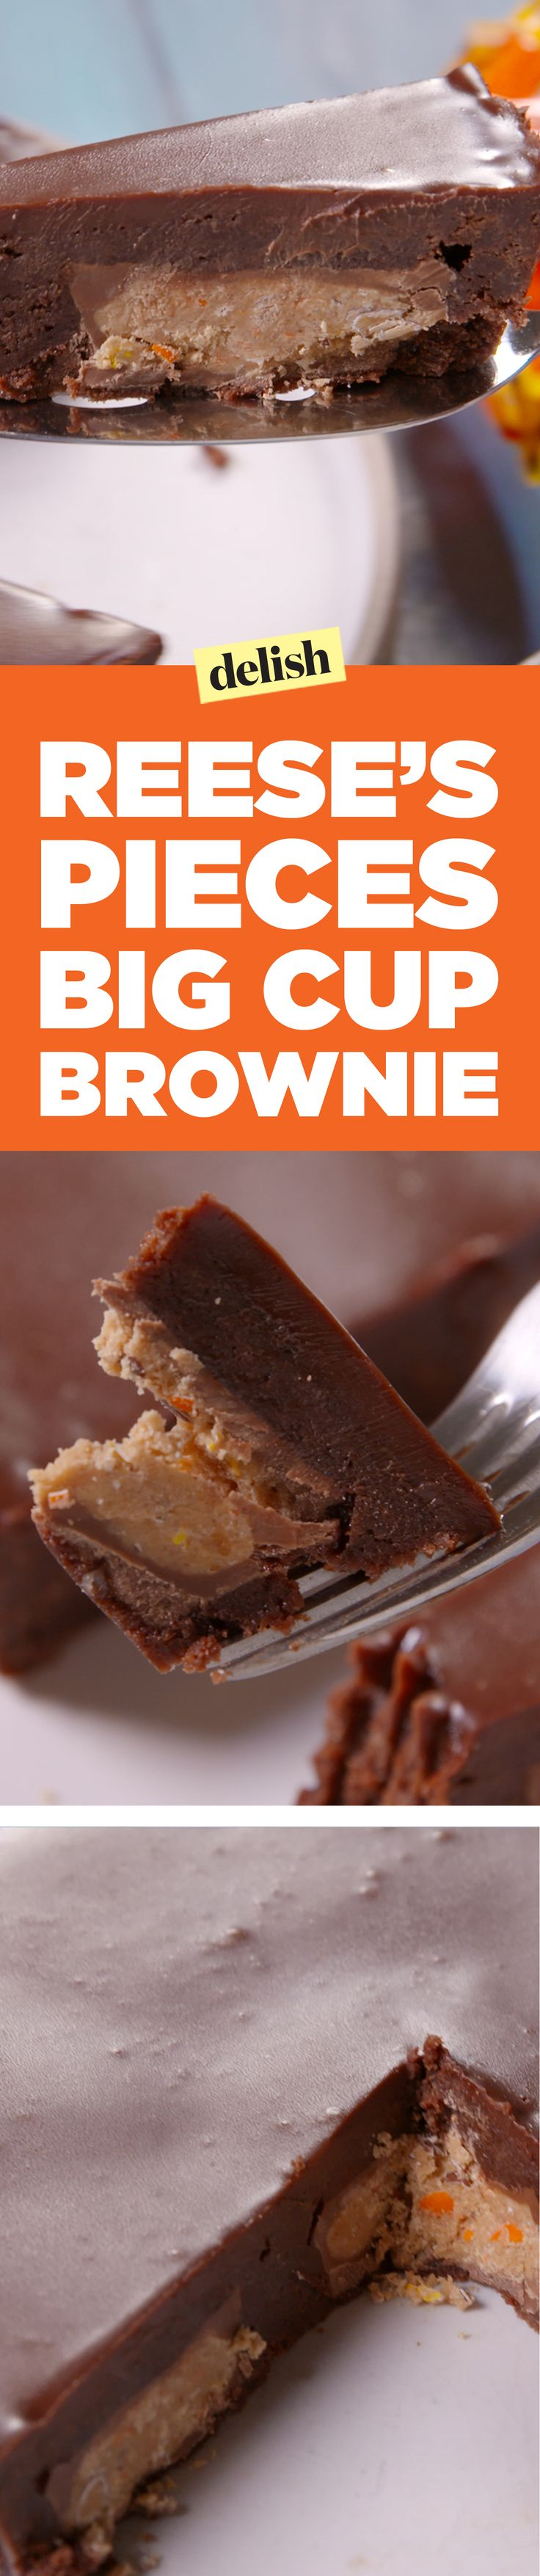 Reese's pieces big cup brownie is the treat your squad deserves. Get the recipe on Delish.com.